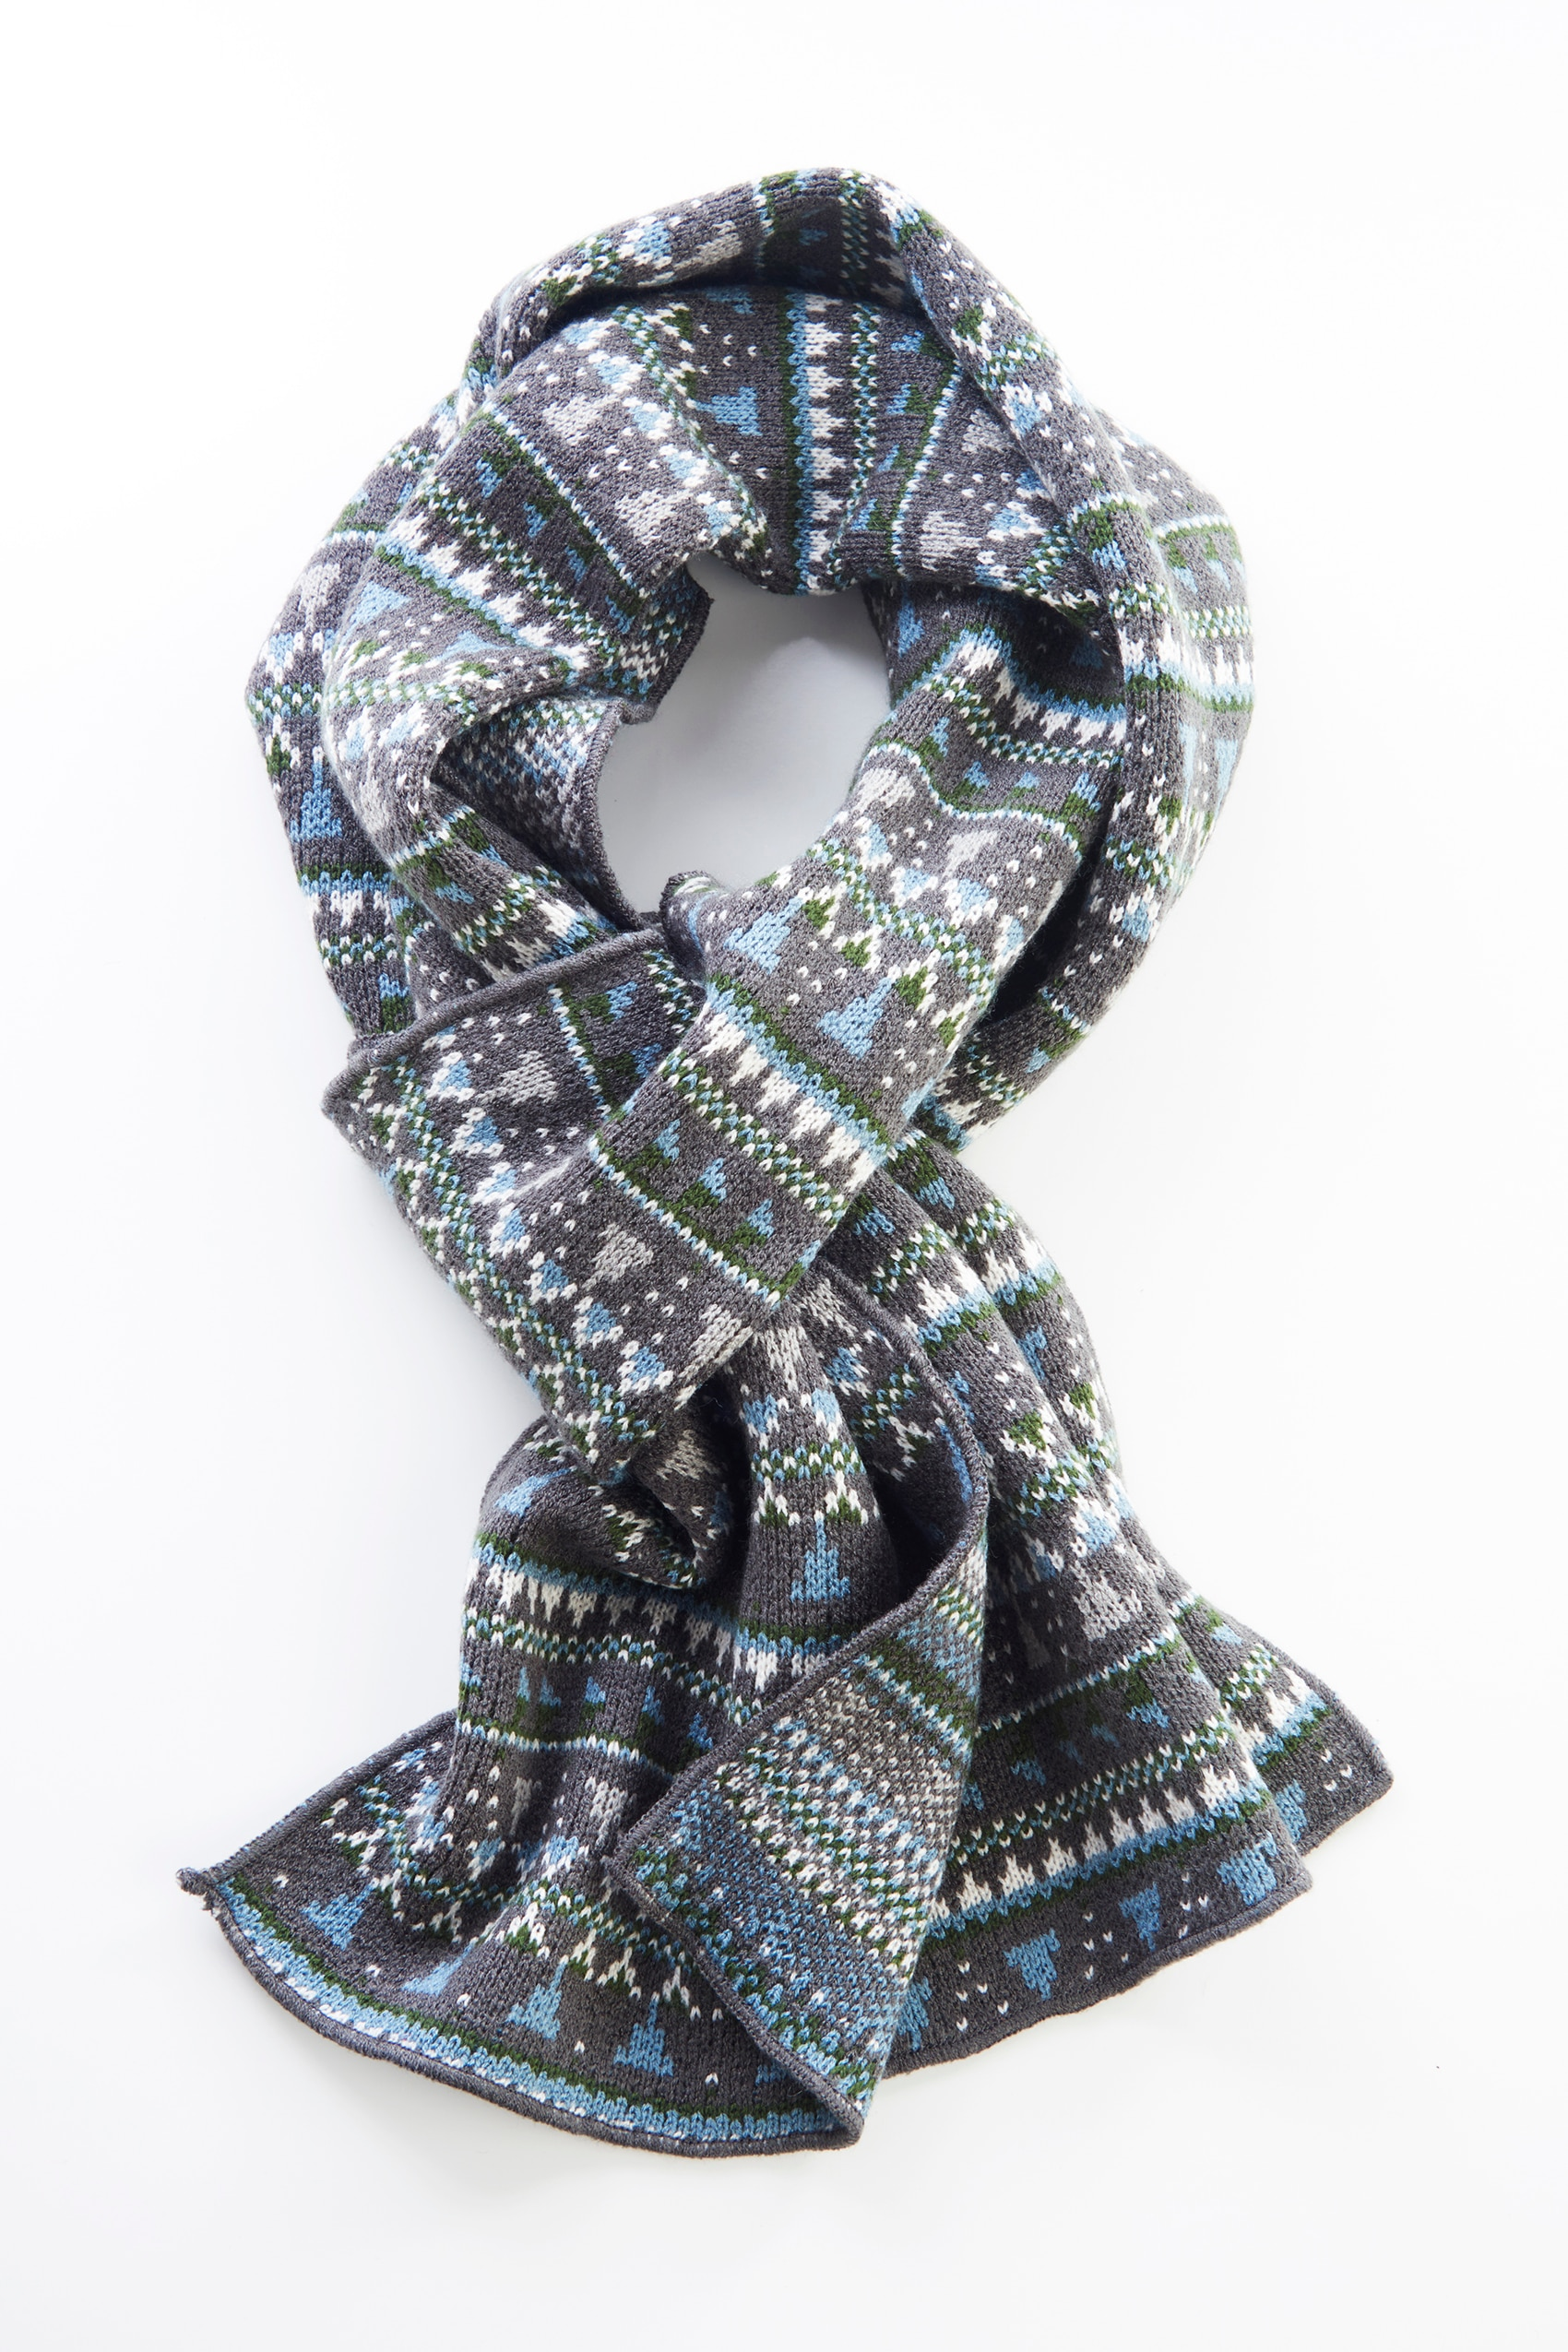 yarn-dyed Fair Isle scarf